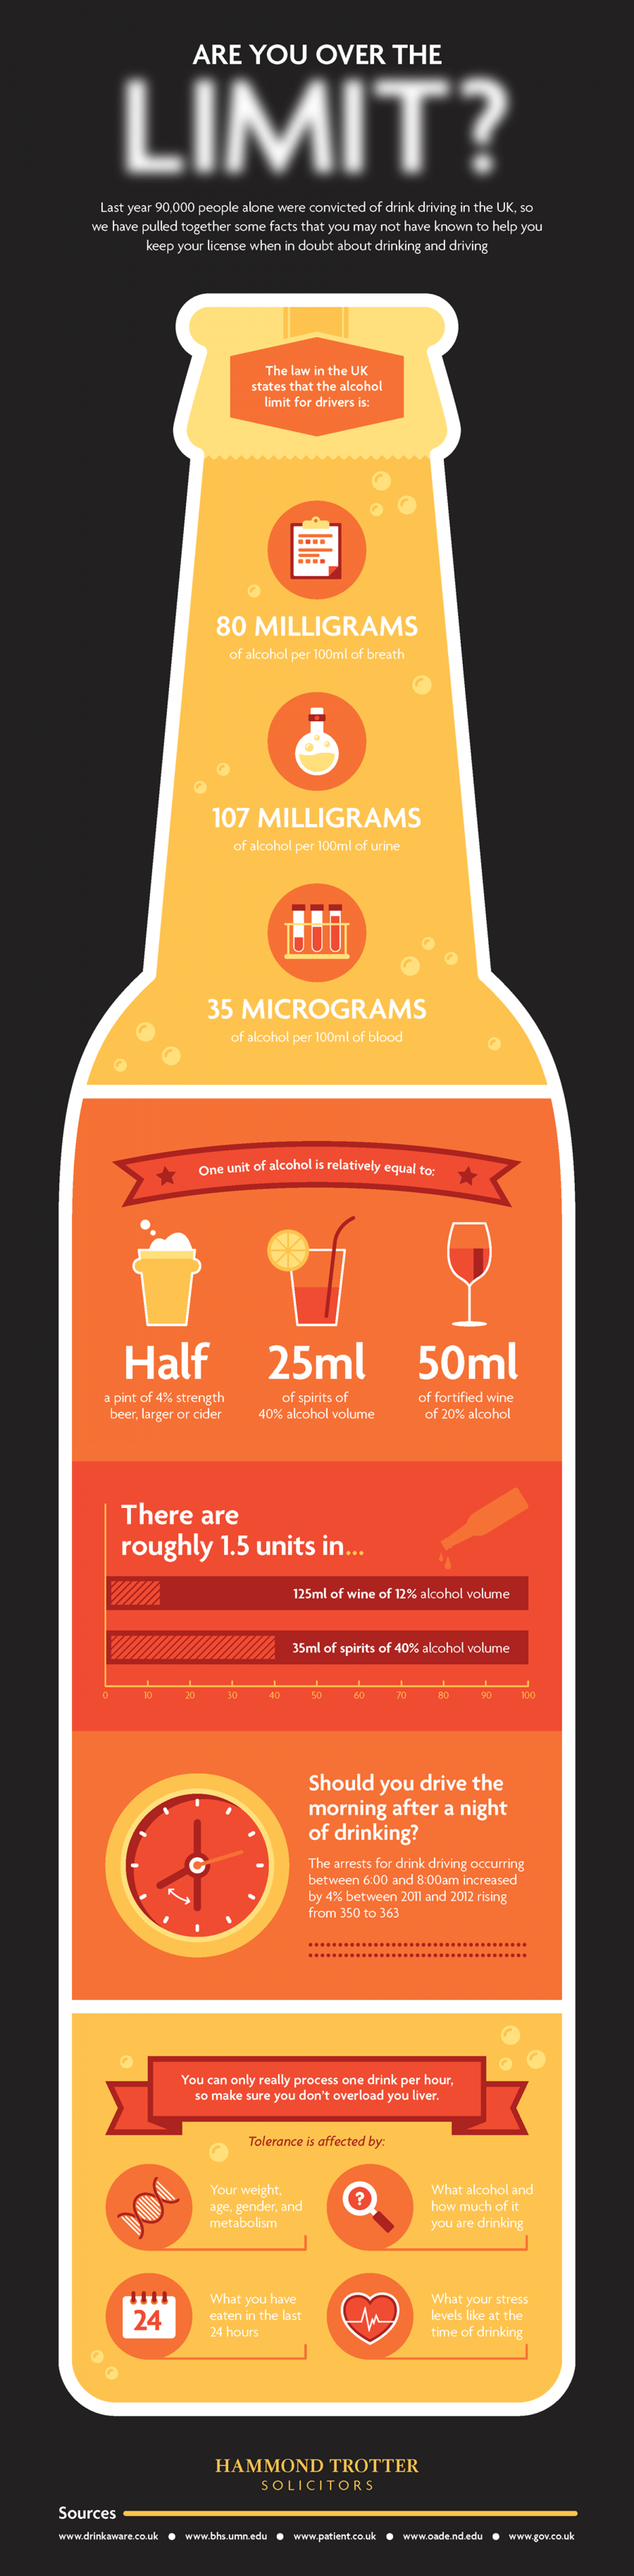 Are You Over The Limit? Infographic